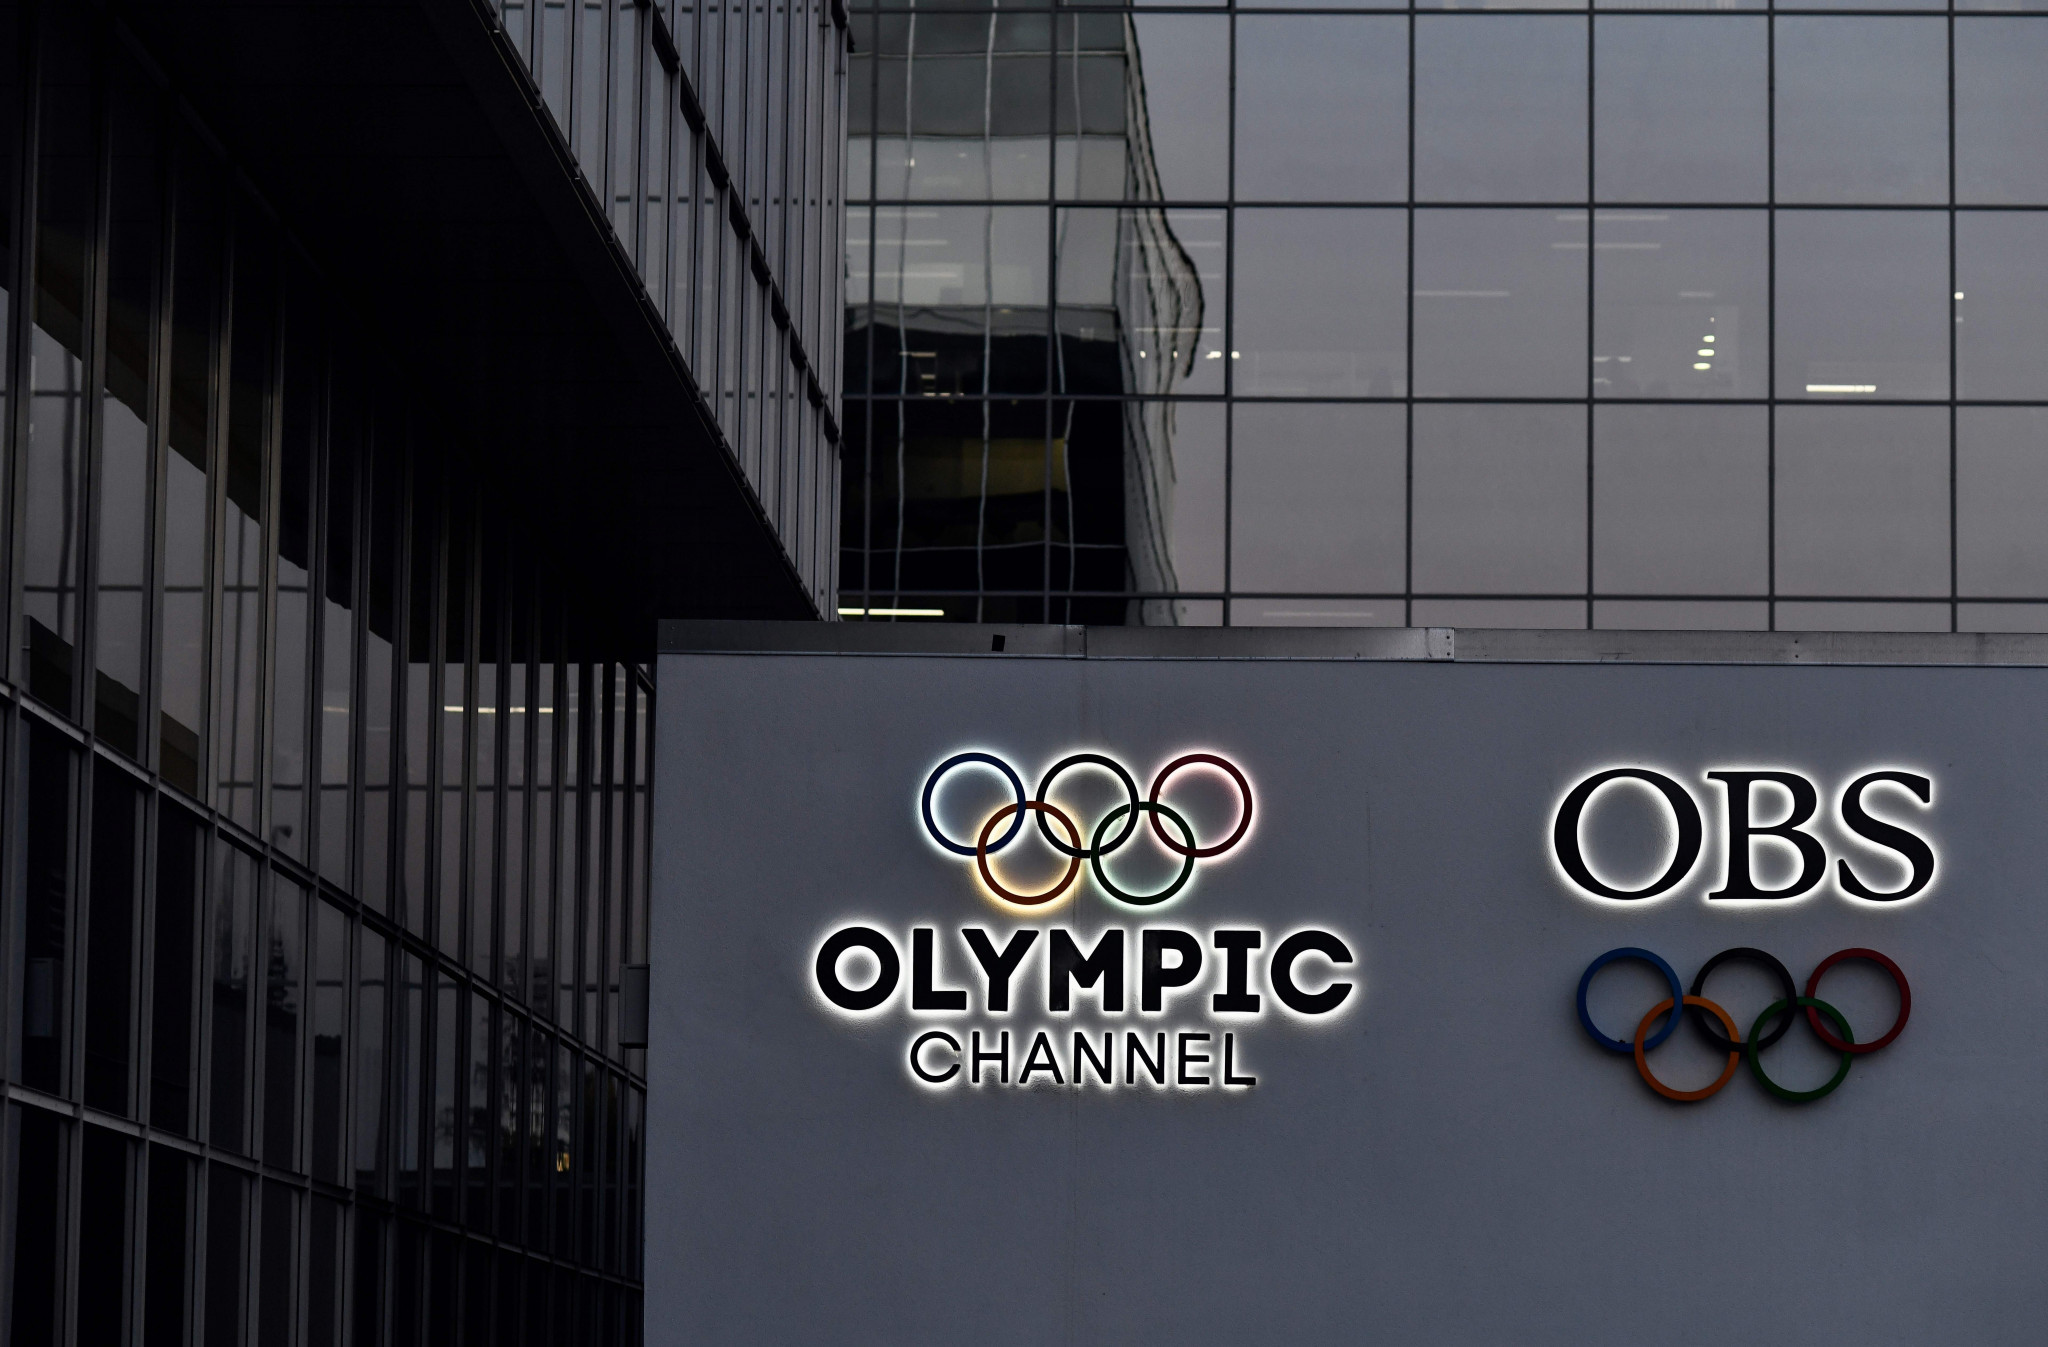 Olympic Channel to show live coverage of Tokyo 2020 boxing qualifiers